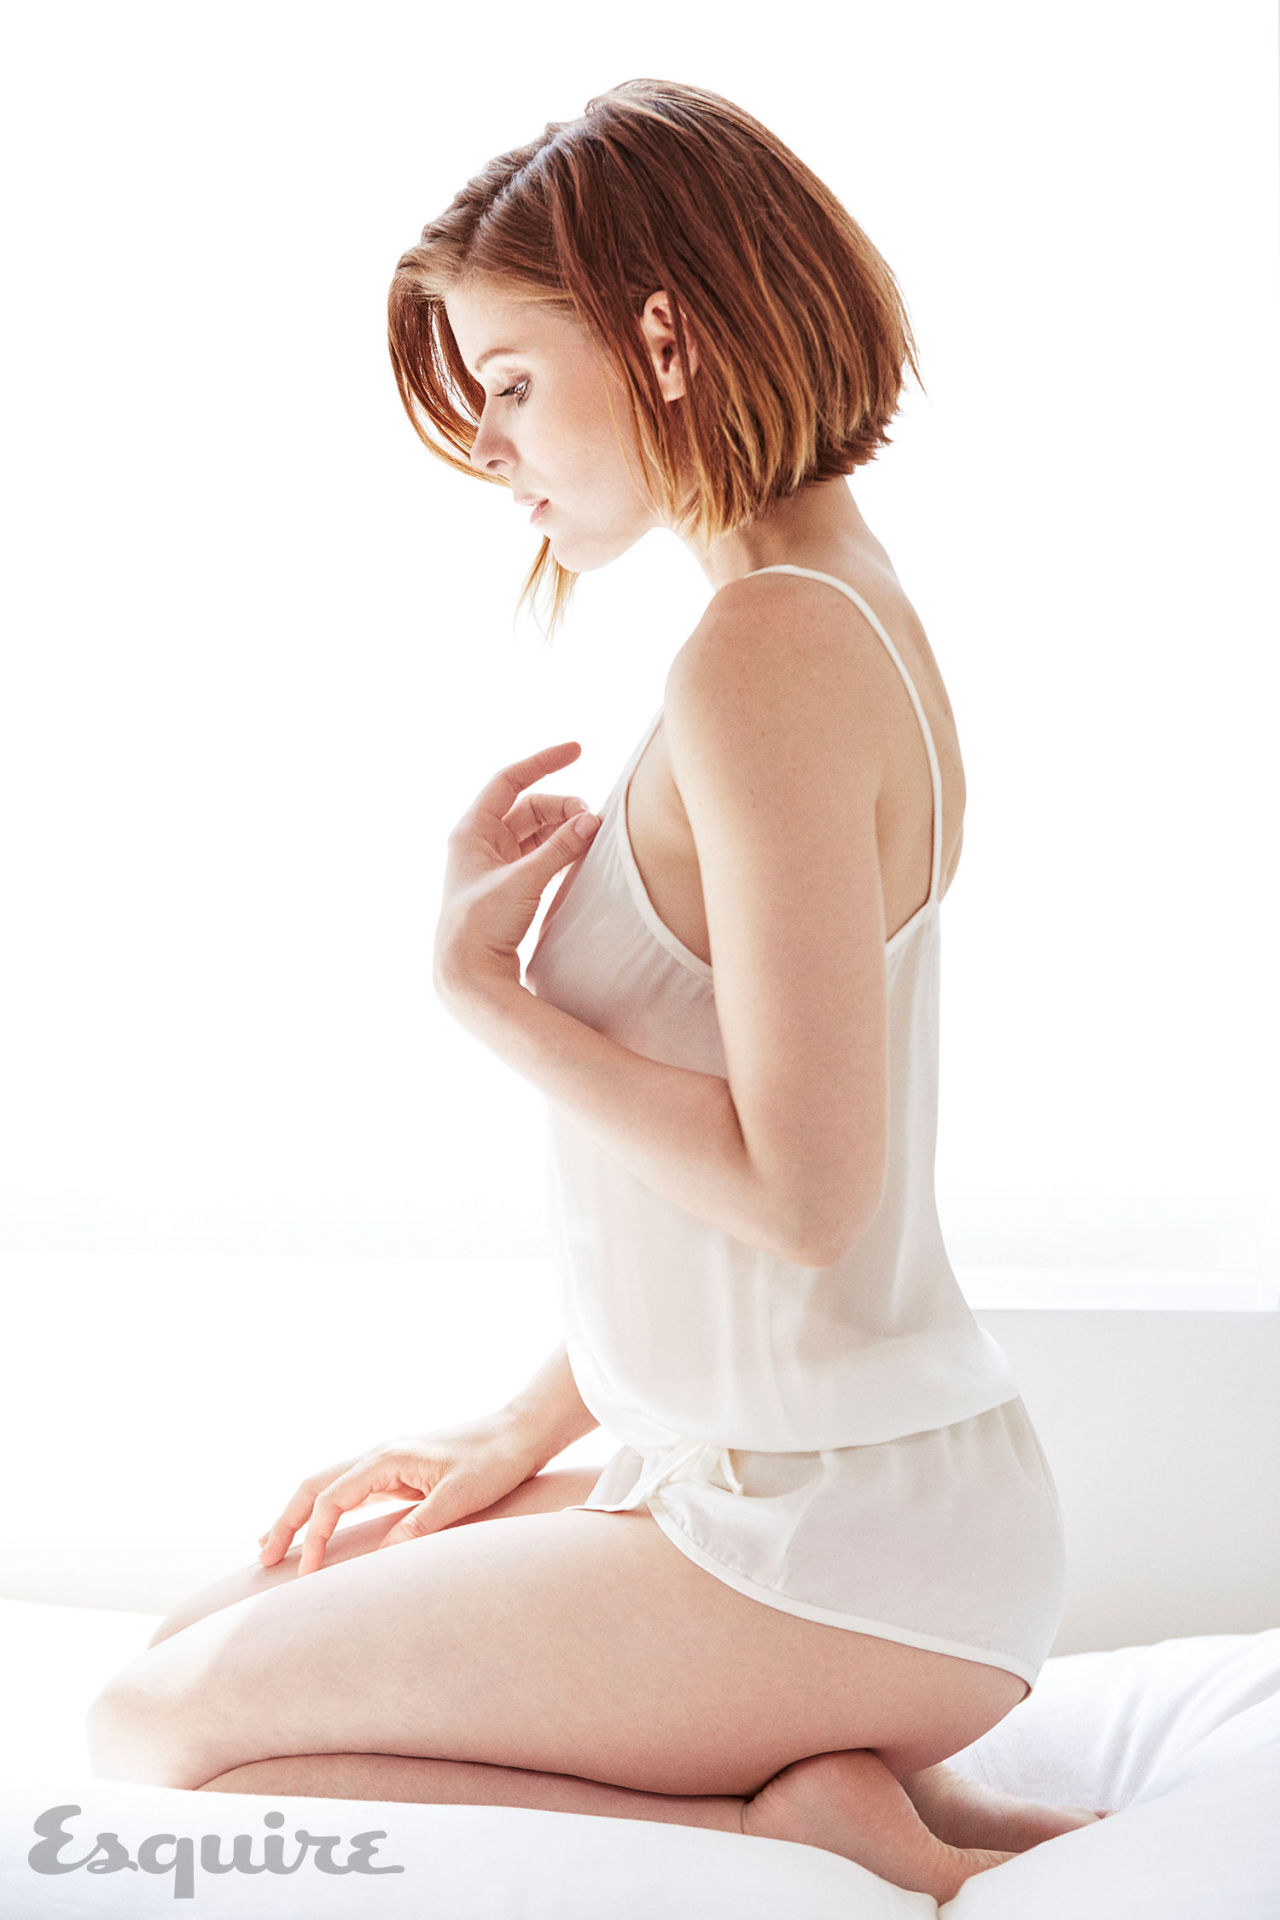 kate_mara_esquire2015_3.jpg